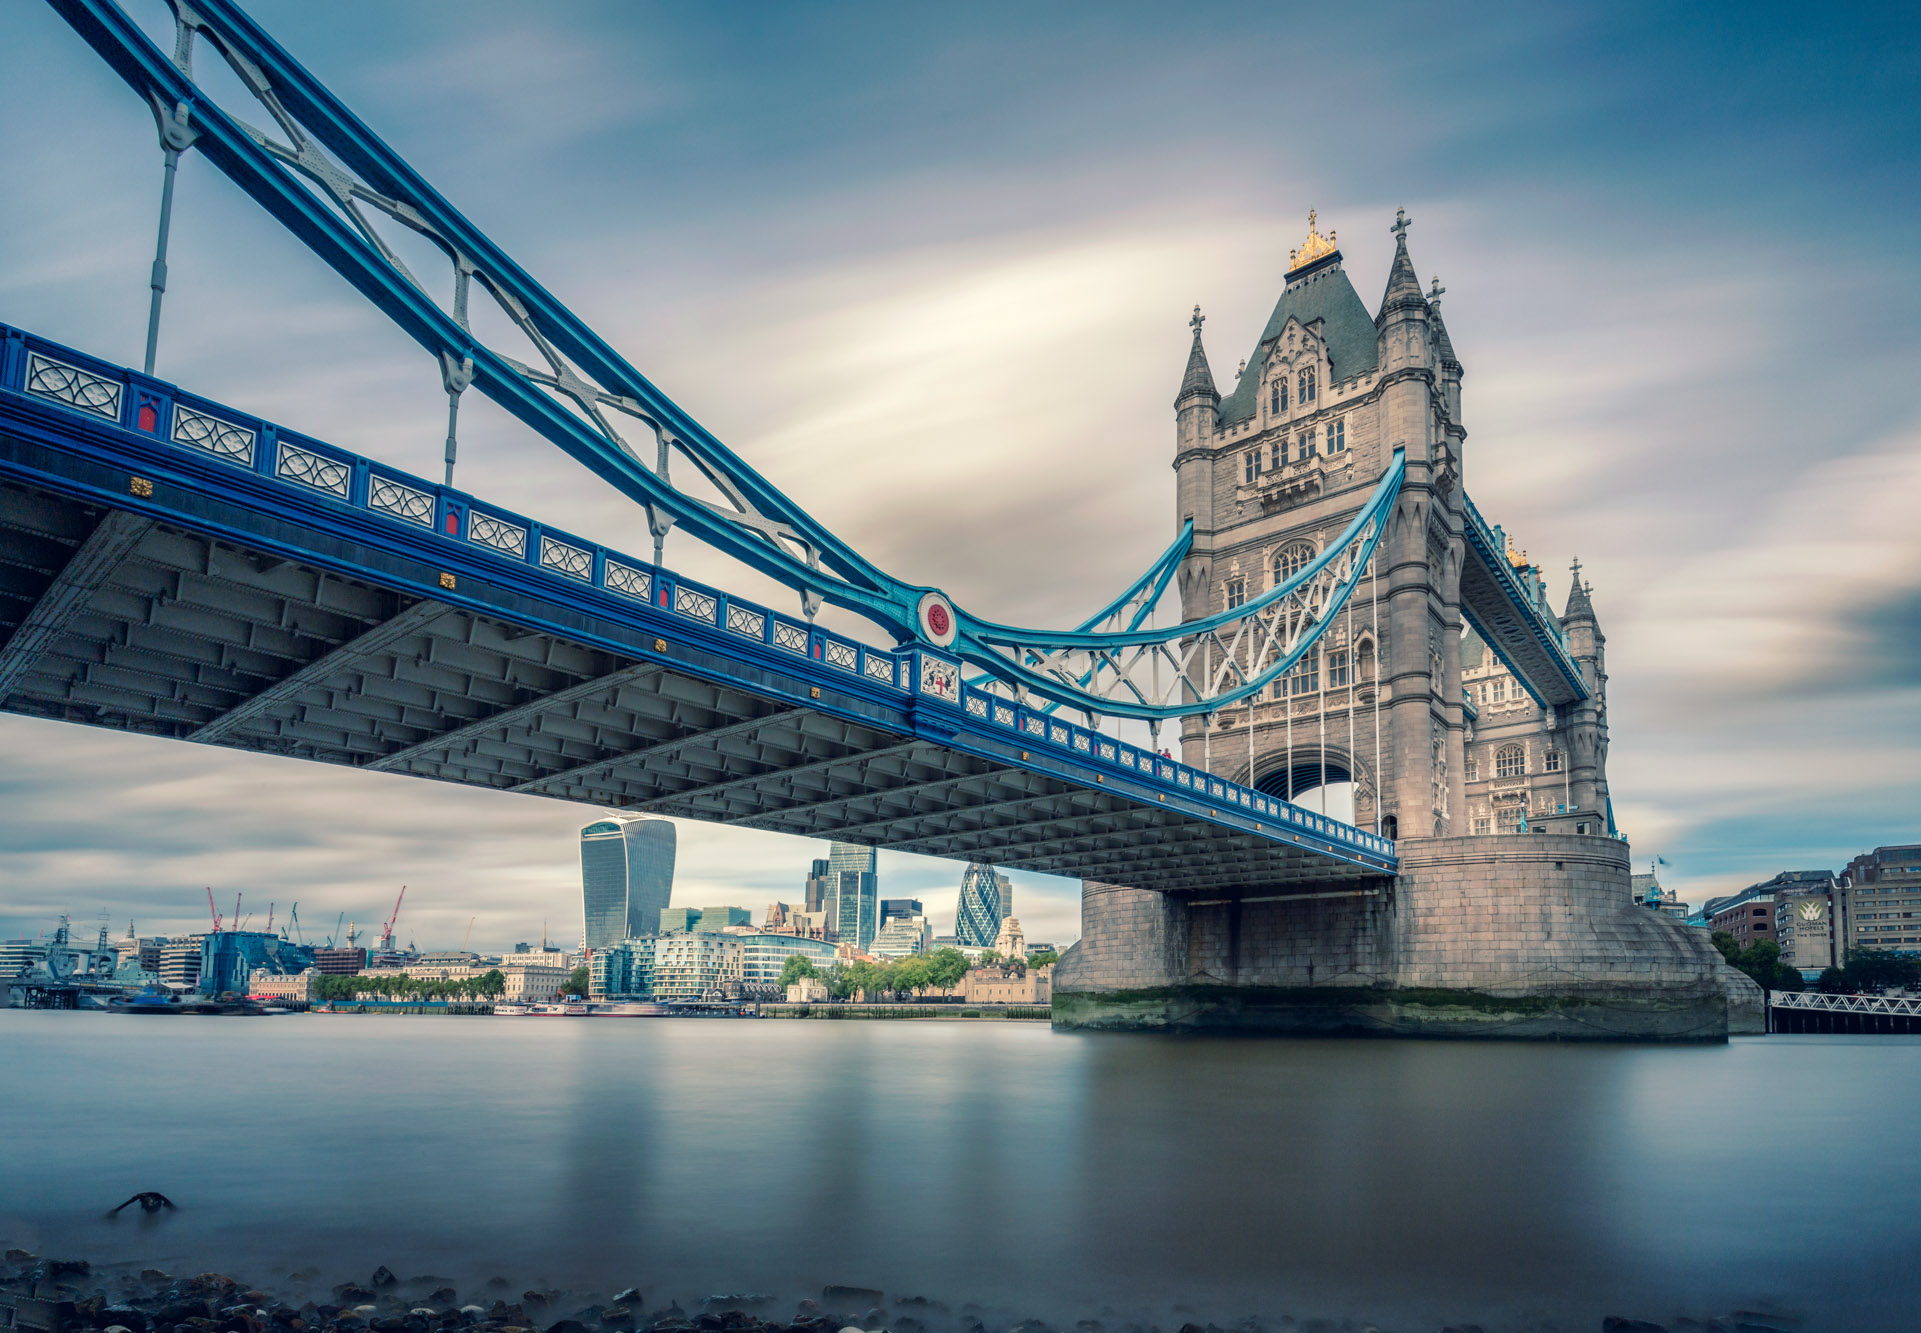 long exposure photograph of Tower Bridge and River Thames in London Uk